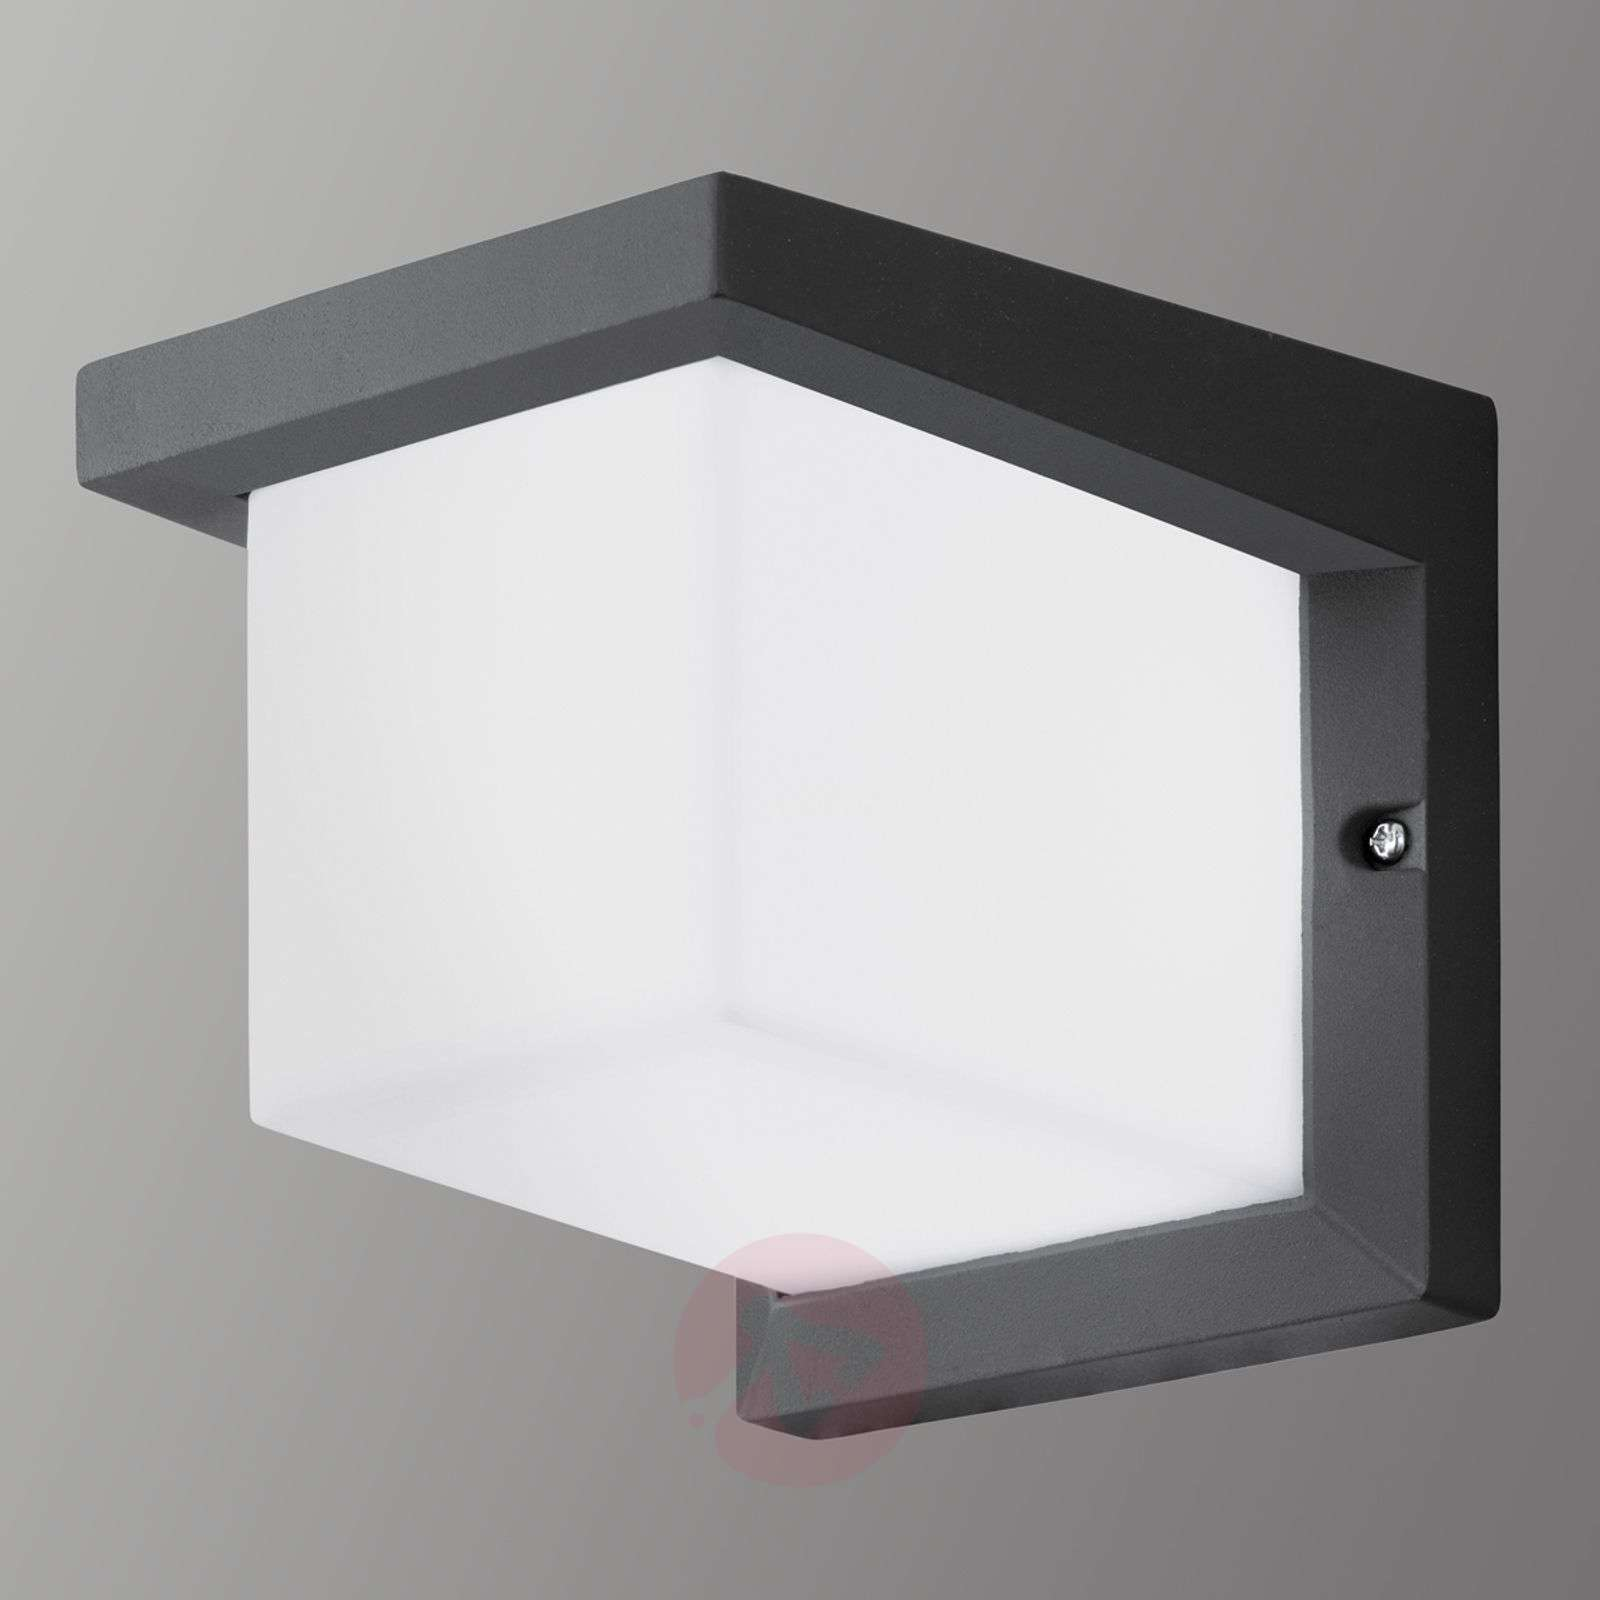 Acquista applique led da esterno desella a forma di cubo lampade.it